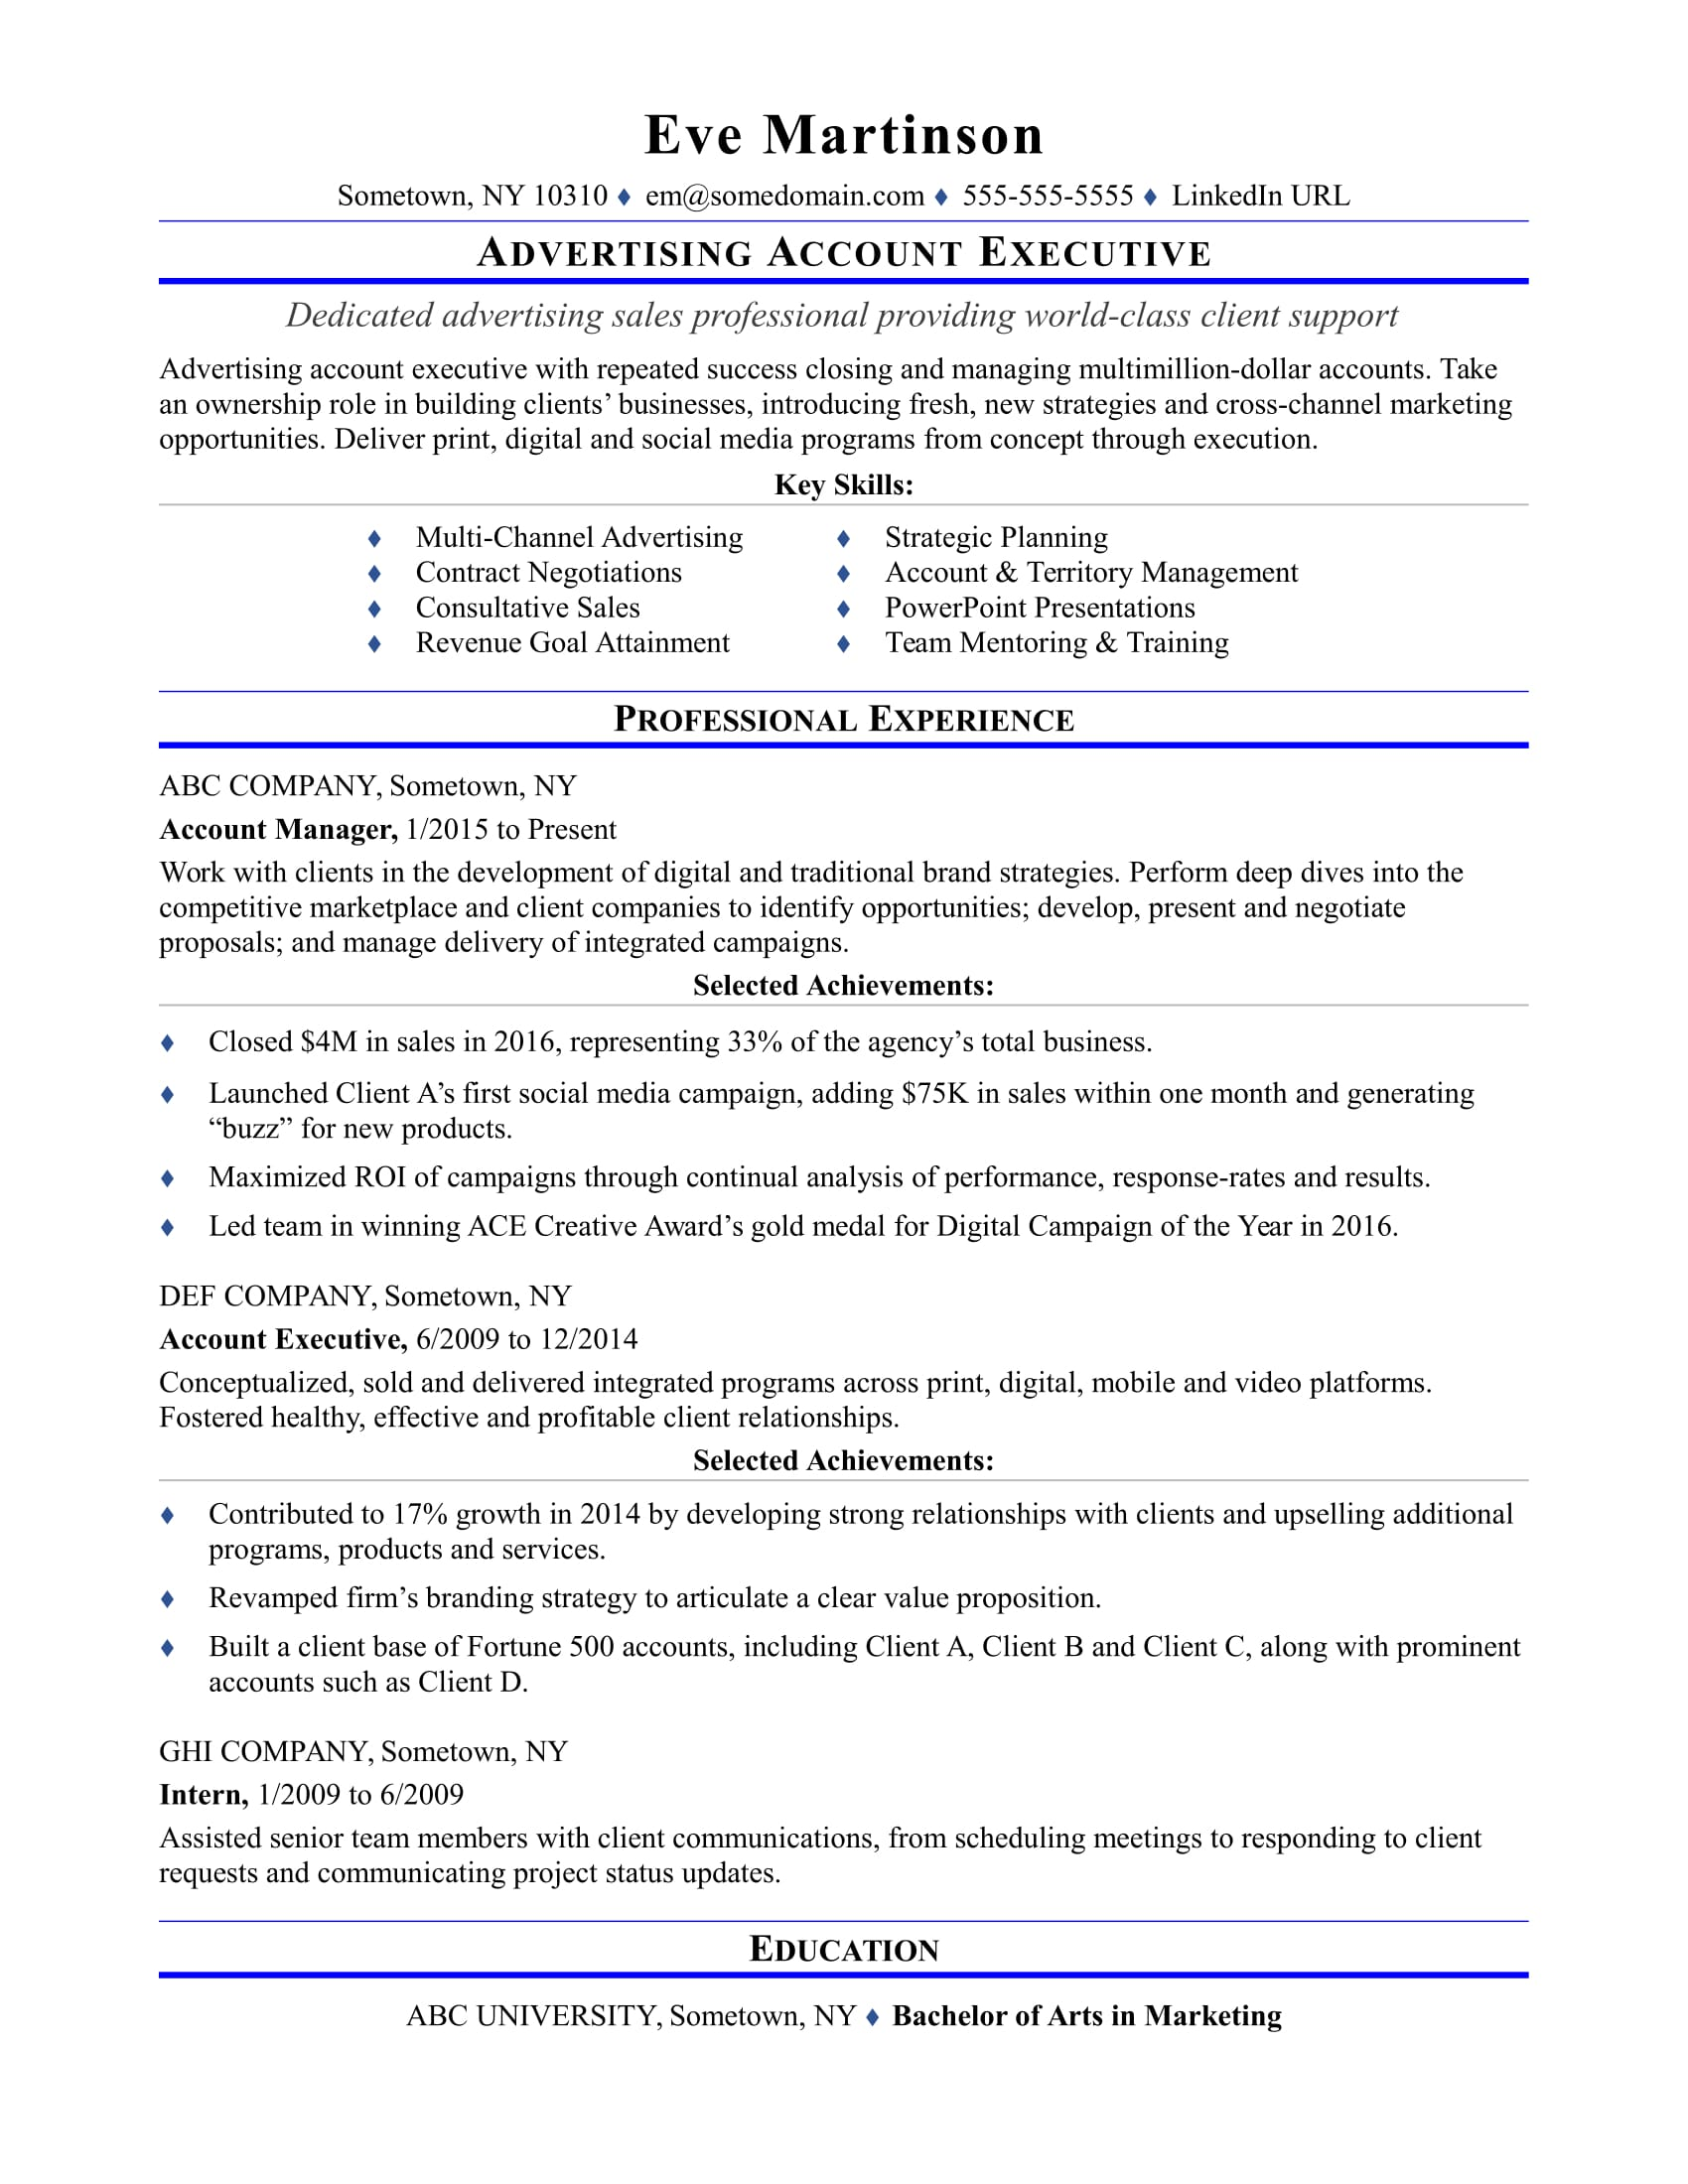 sample resume for an advertising account executive monster examples summary student Resume Account Executive Resume Examples